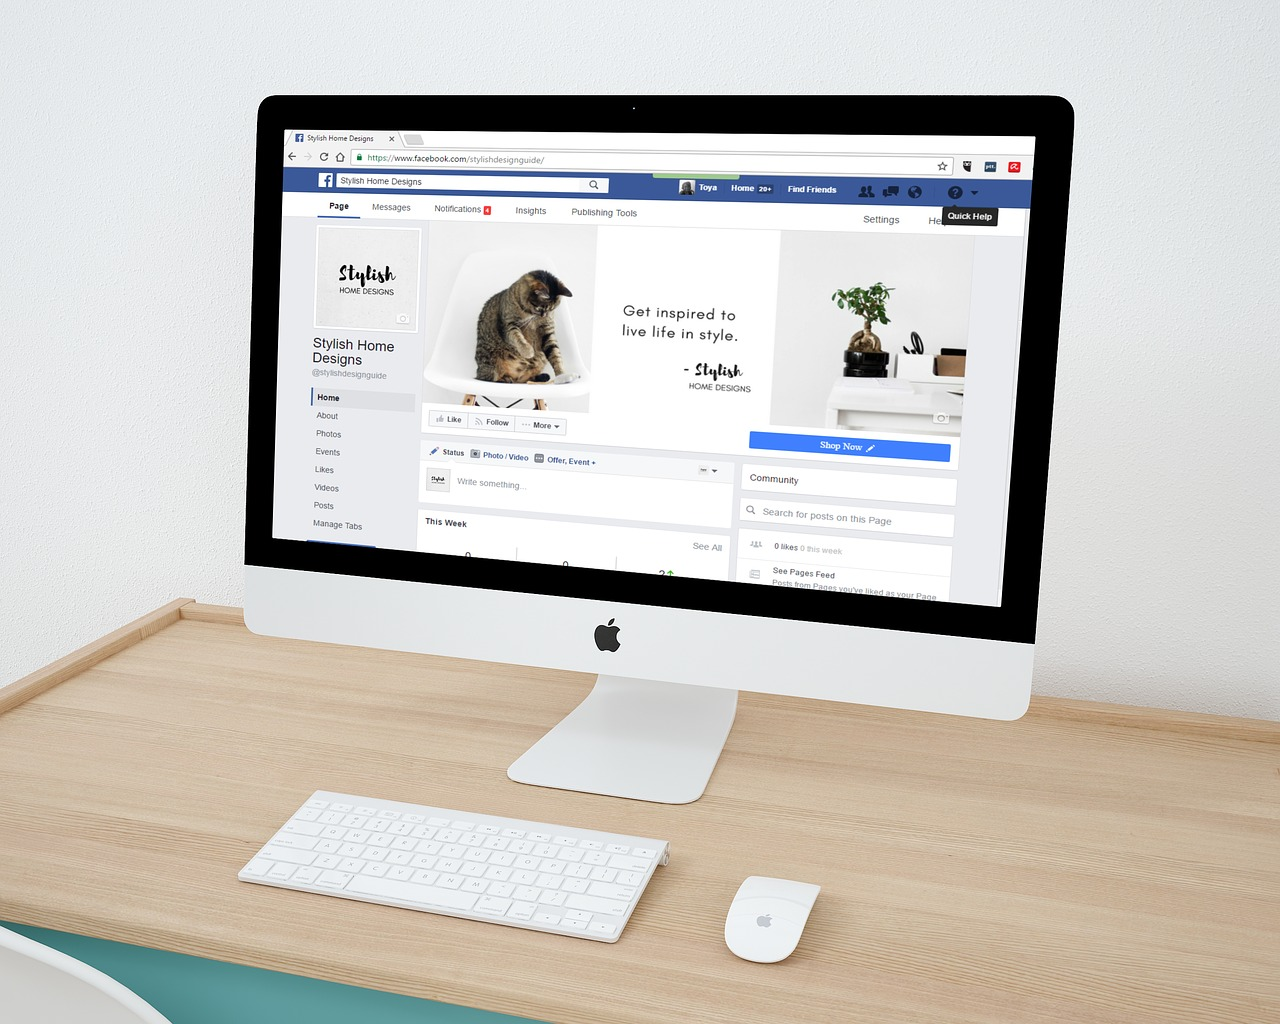 5 A/B Testing Tips for Facebook Ads Marketing